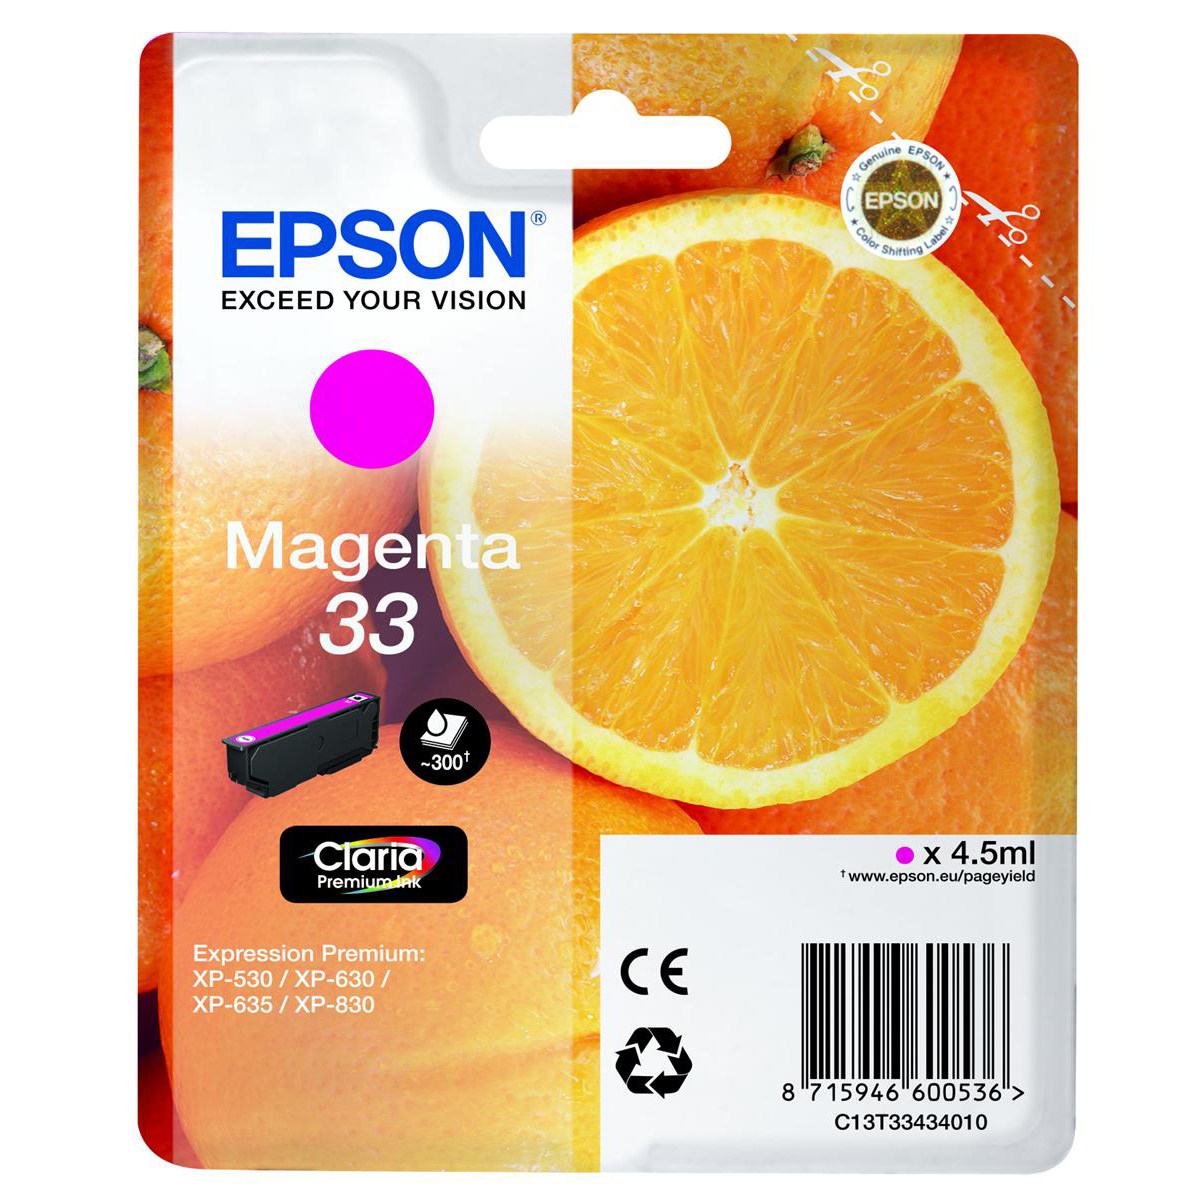 Epson T33 Inkjet Cartridge Orange Page Life 300pp 4.5ml Magenta Ref C13T33434012